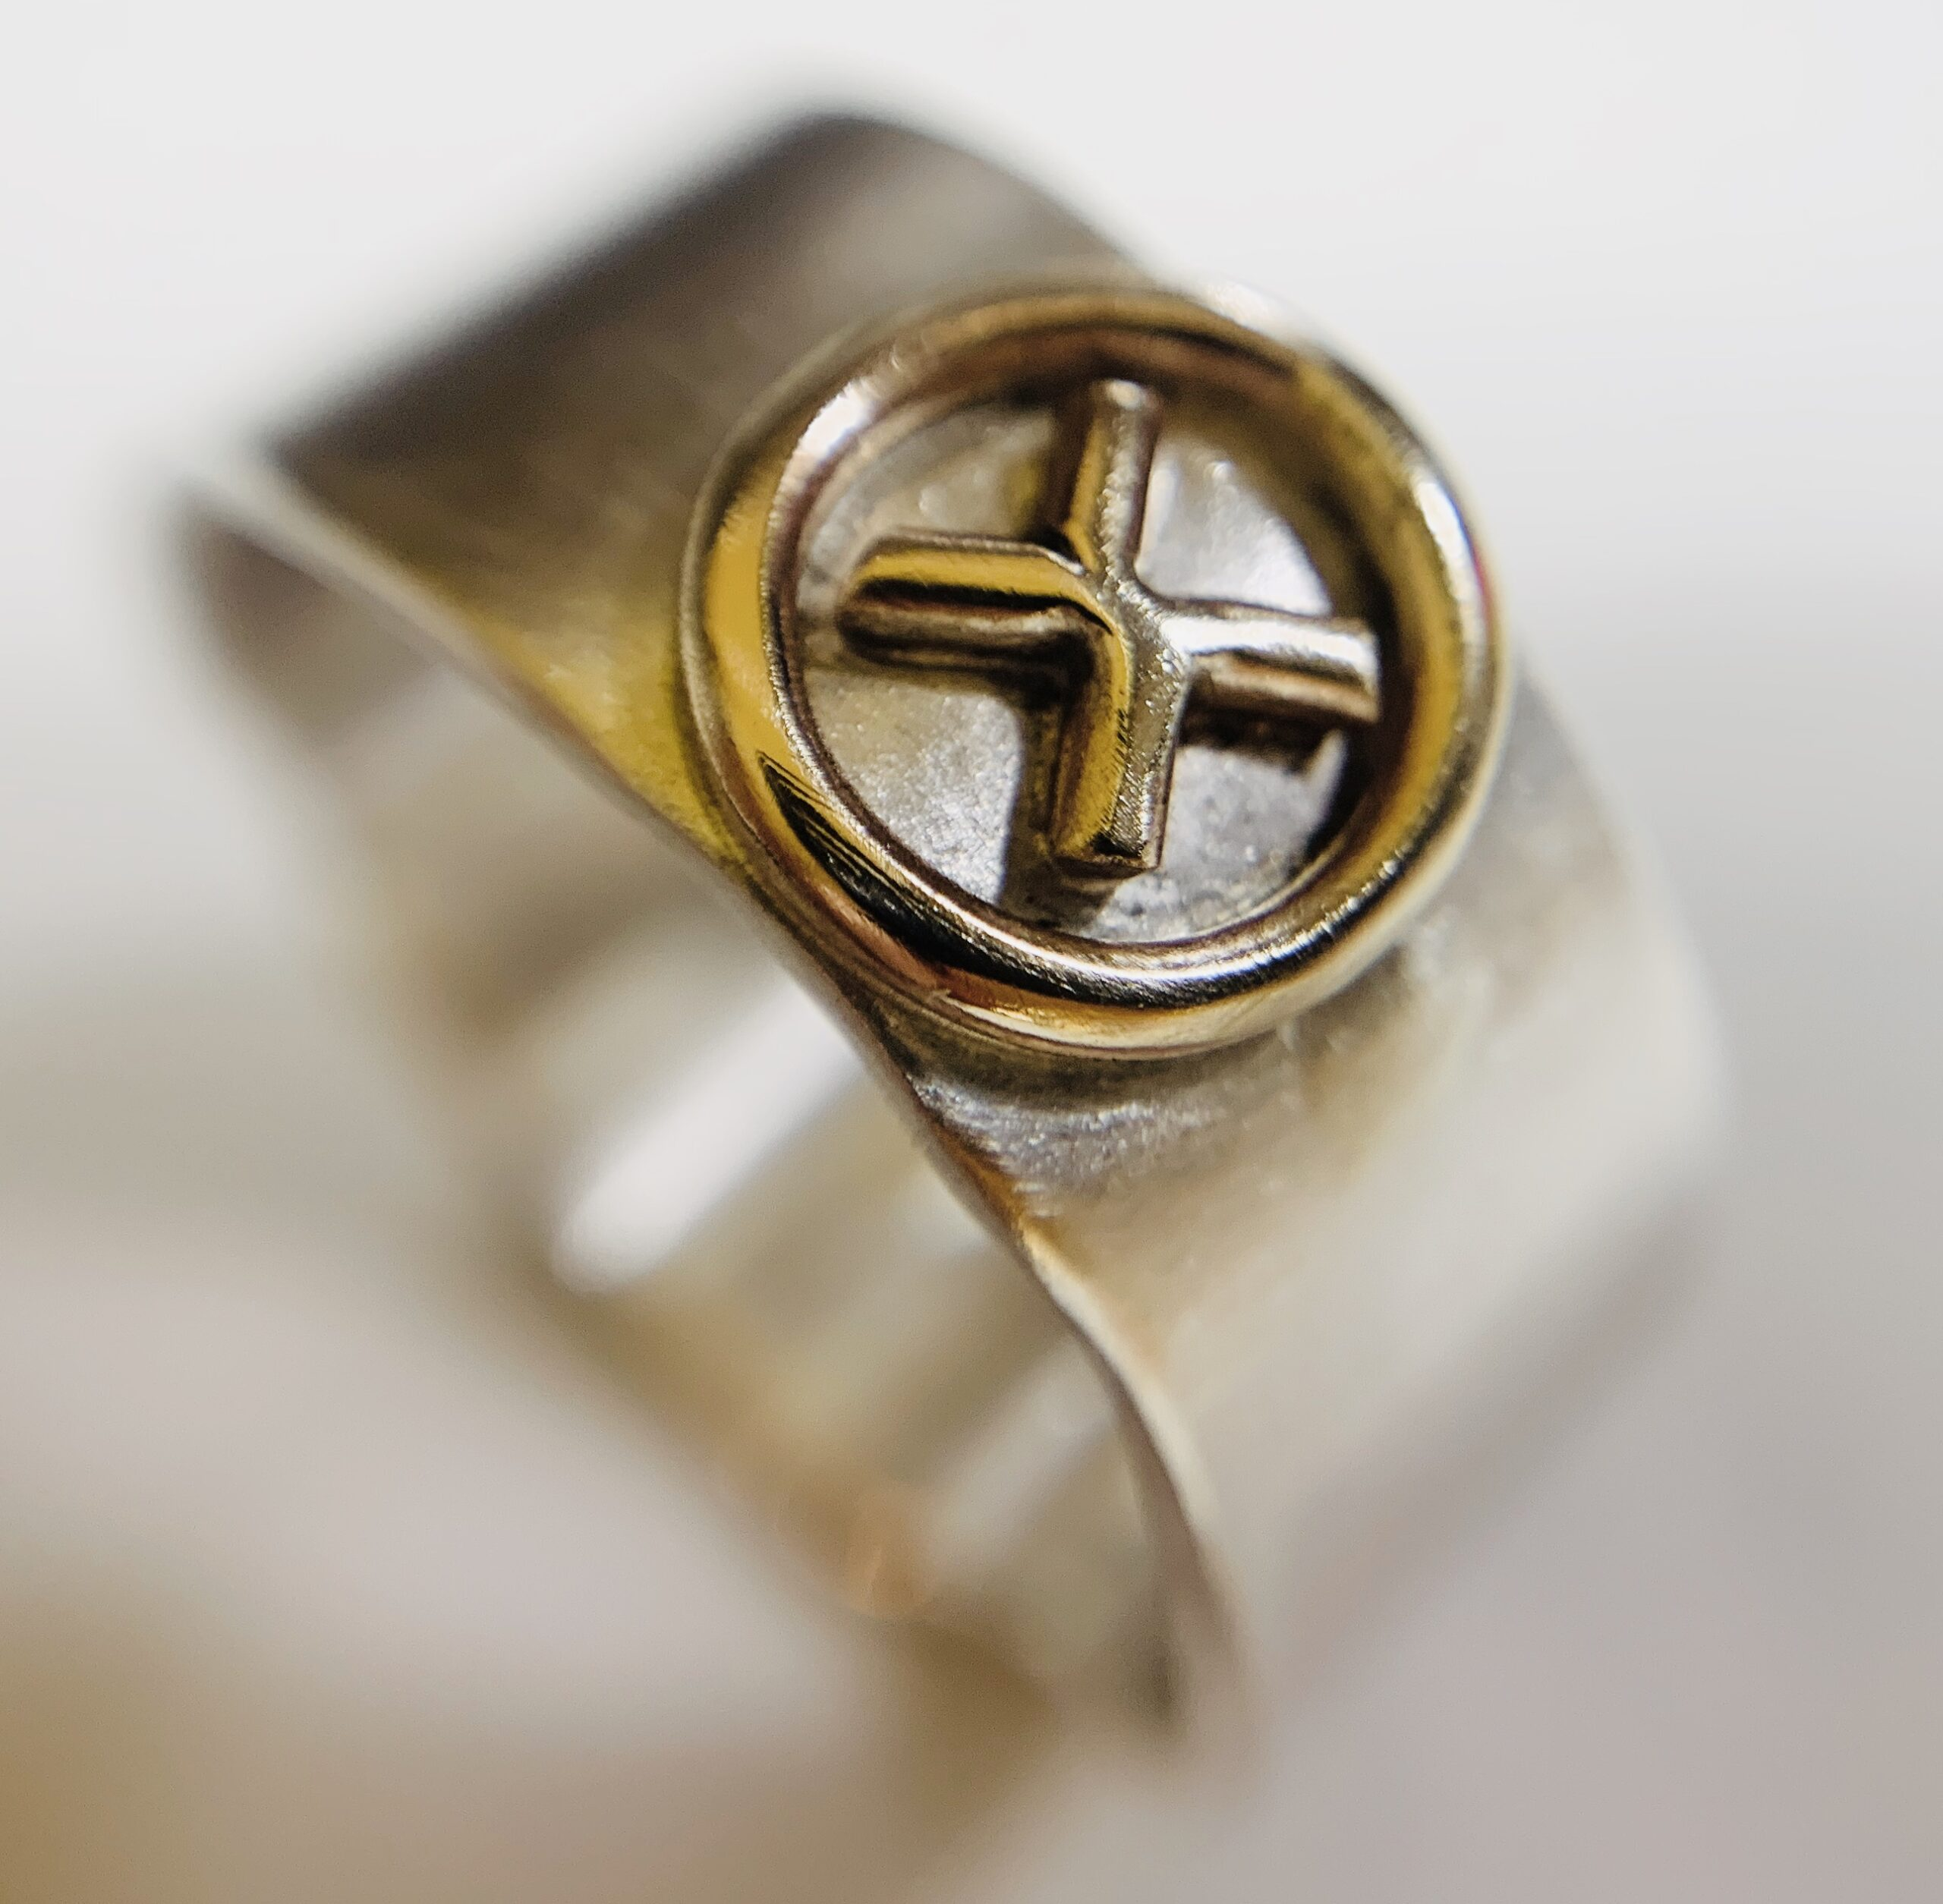 Lustre silver & gold ring by Colette Hazelwood Contemporary Jewellery